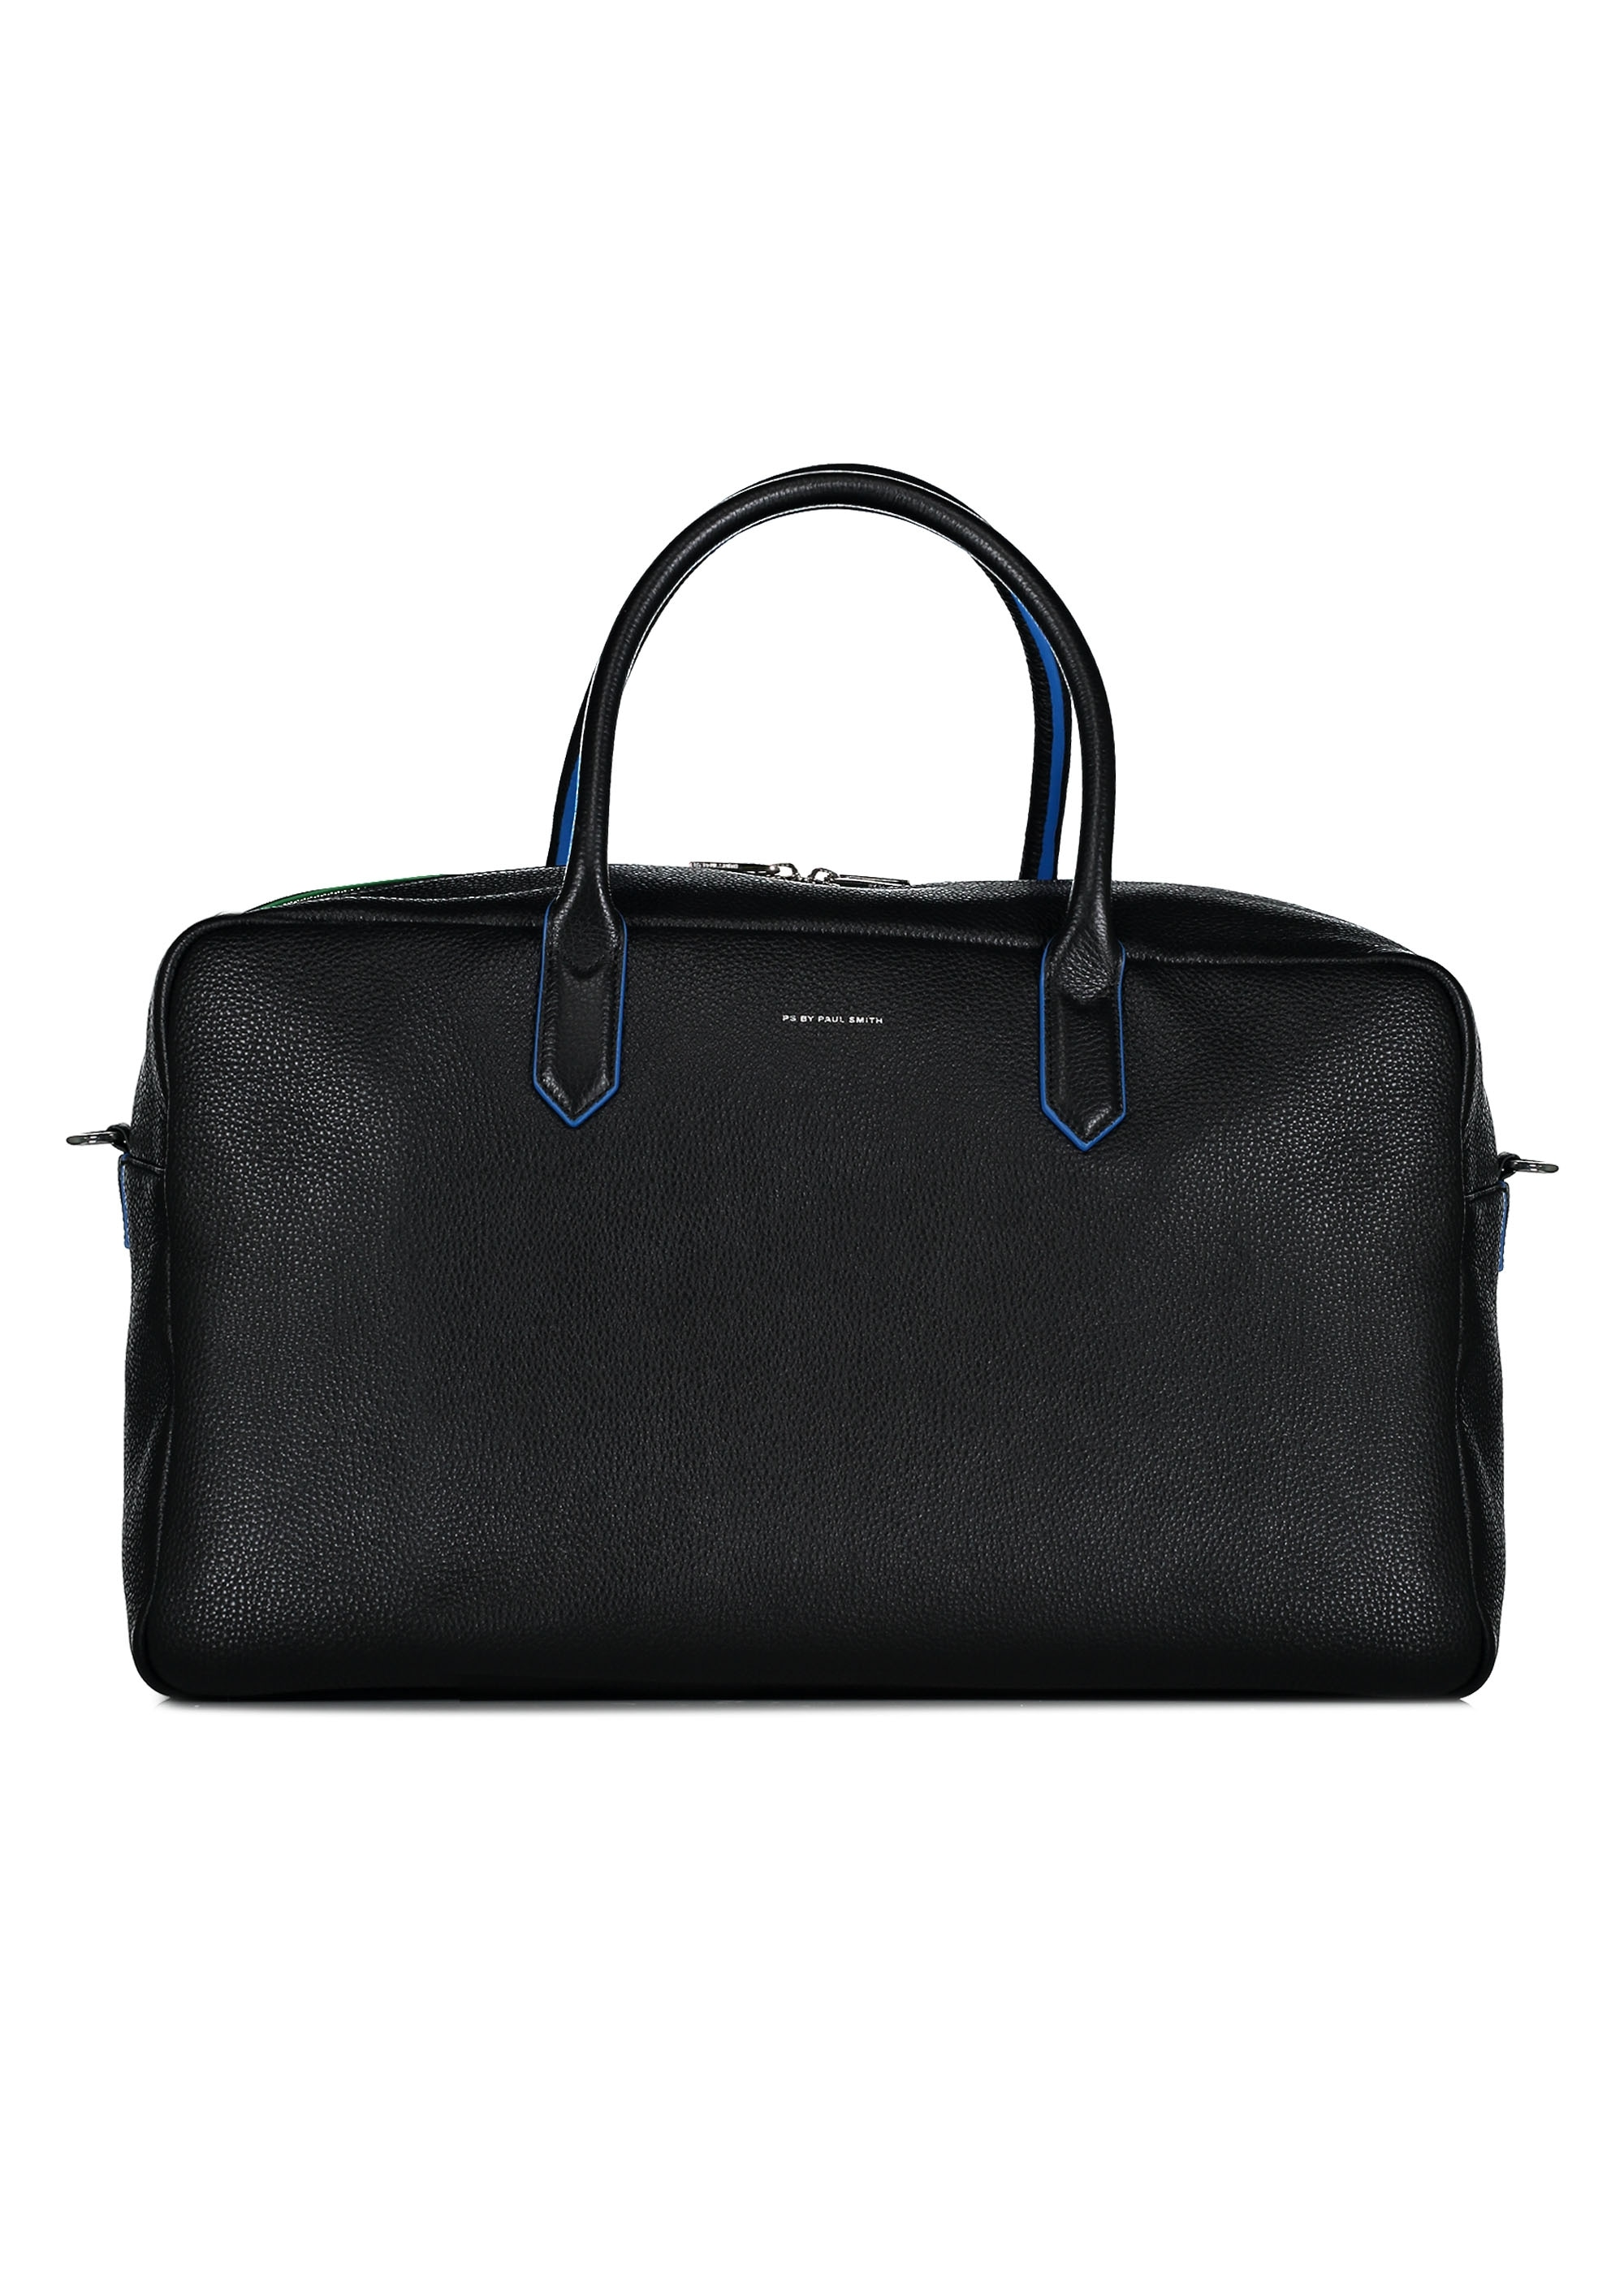 Paul Smith Sports Holdall Bag - Black - Bags from Triads UK 8a97a8366d0f5